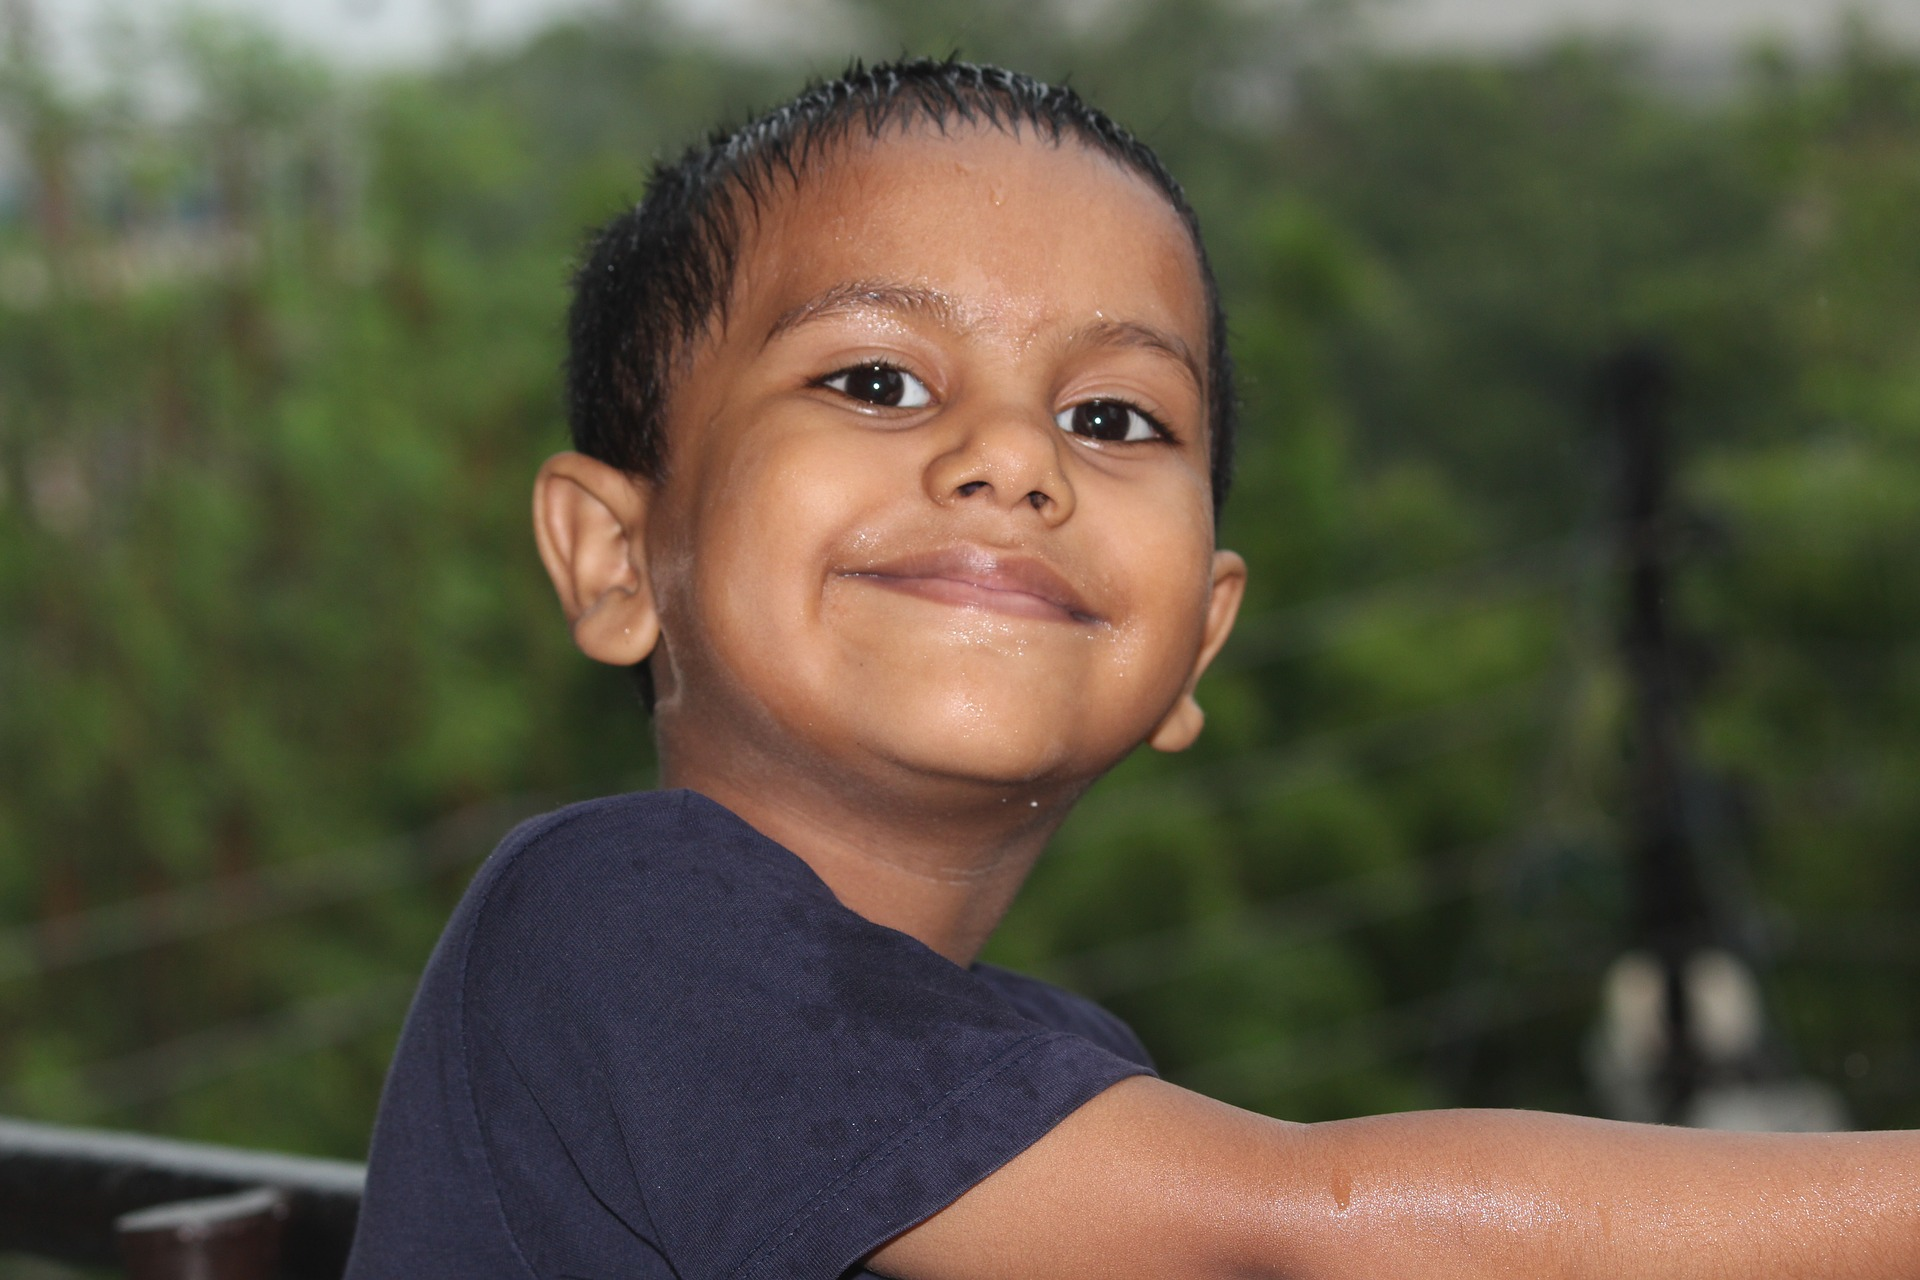 Happiness on a Kid | Kids Car Donations